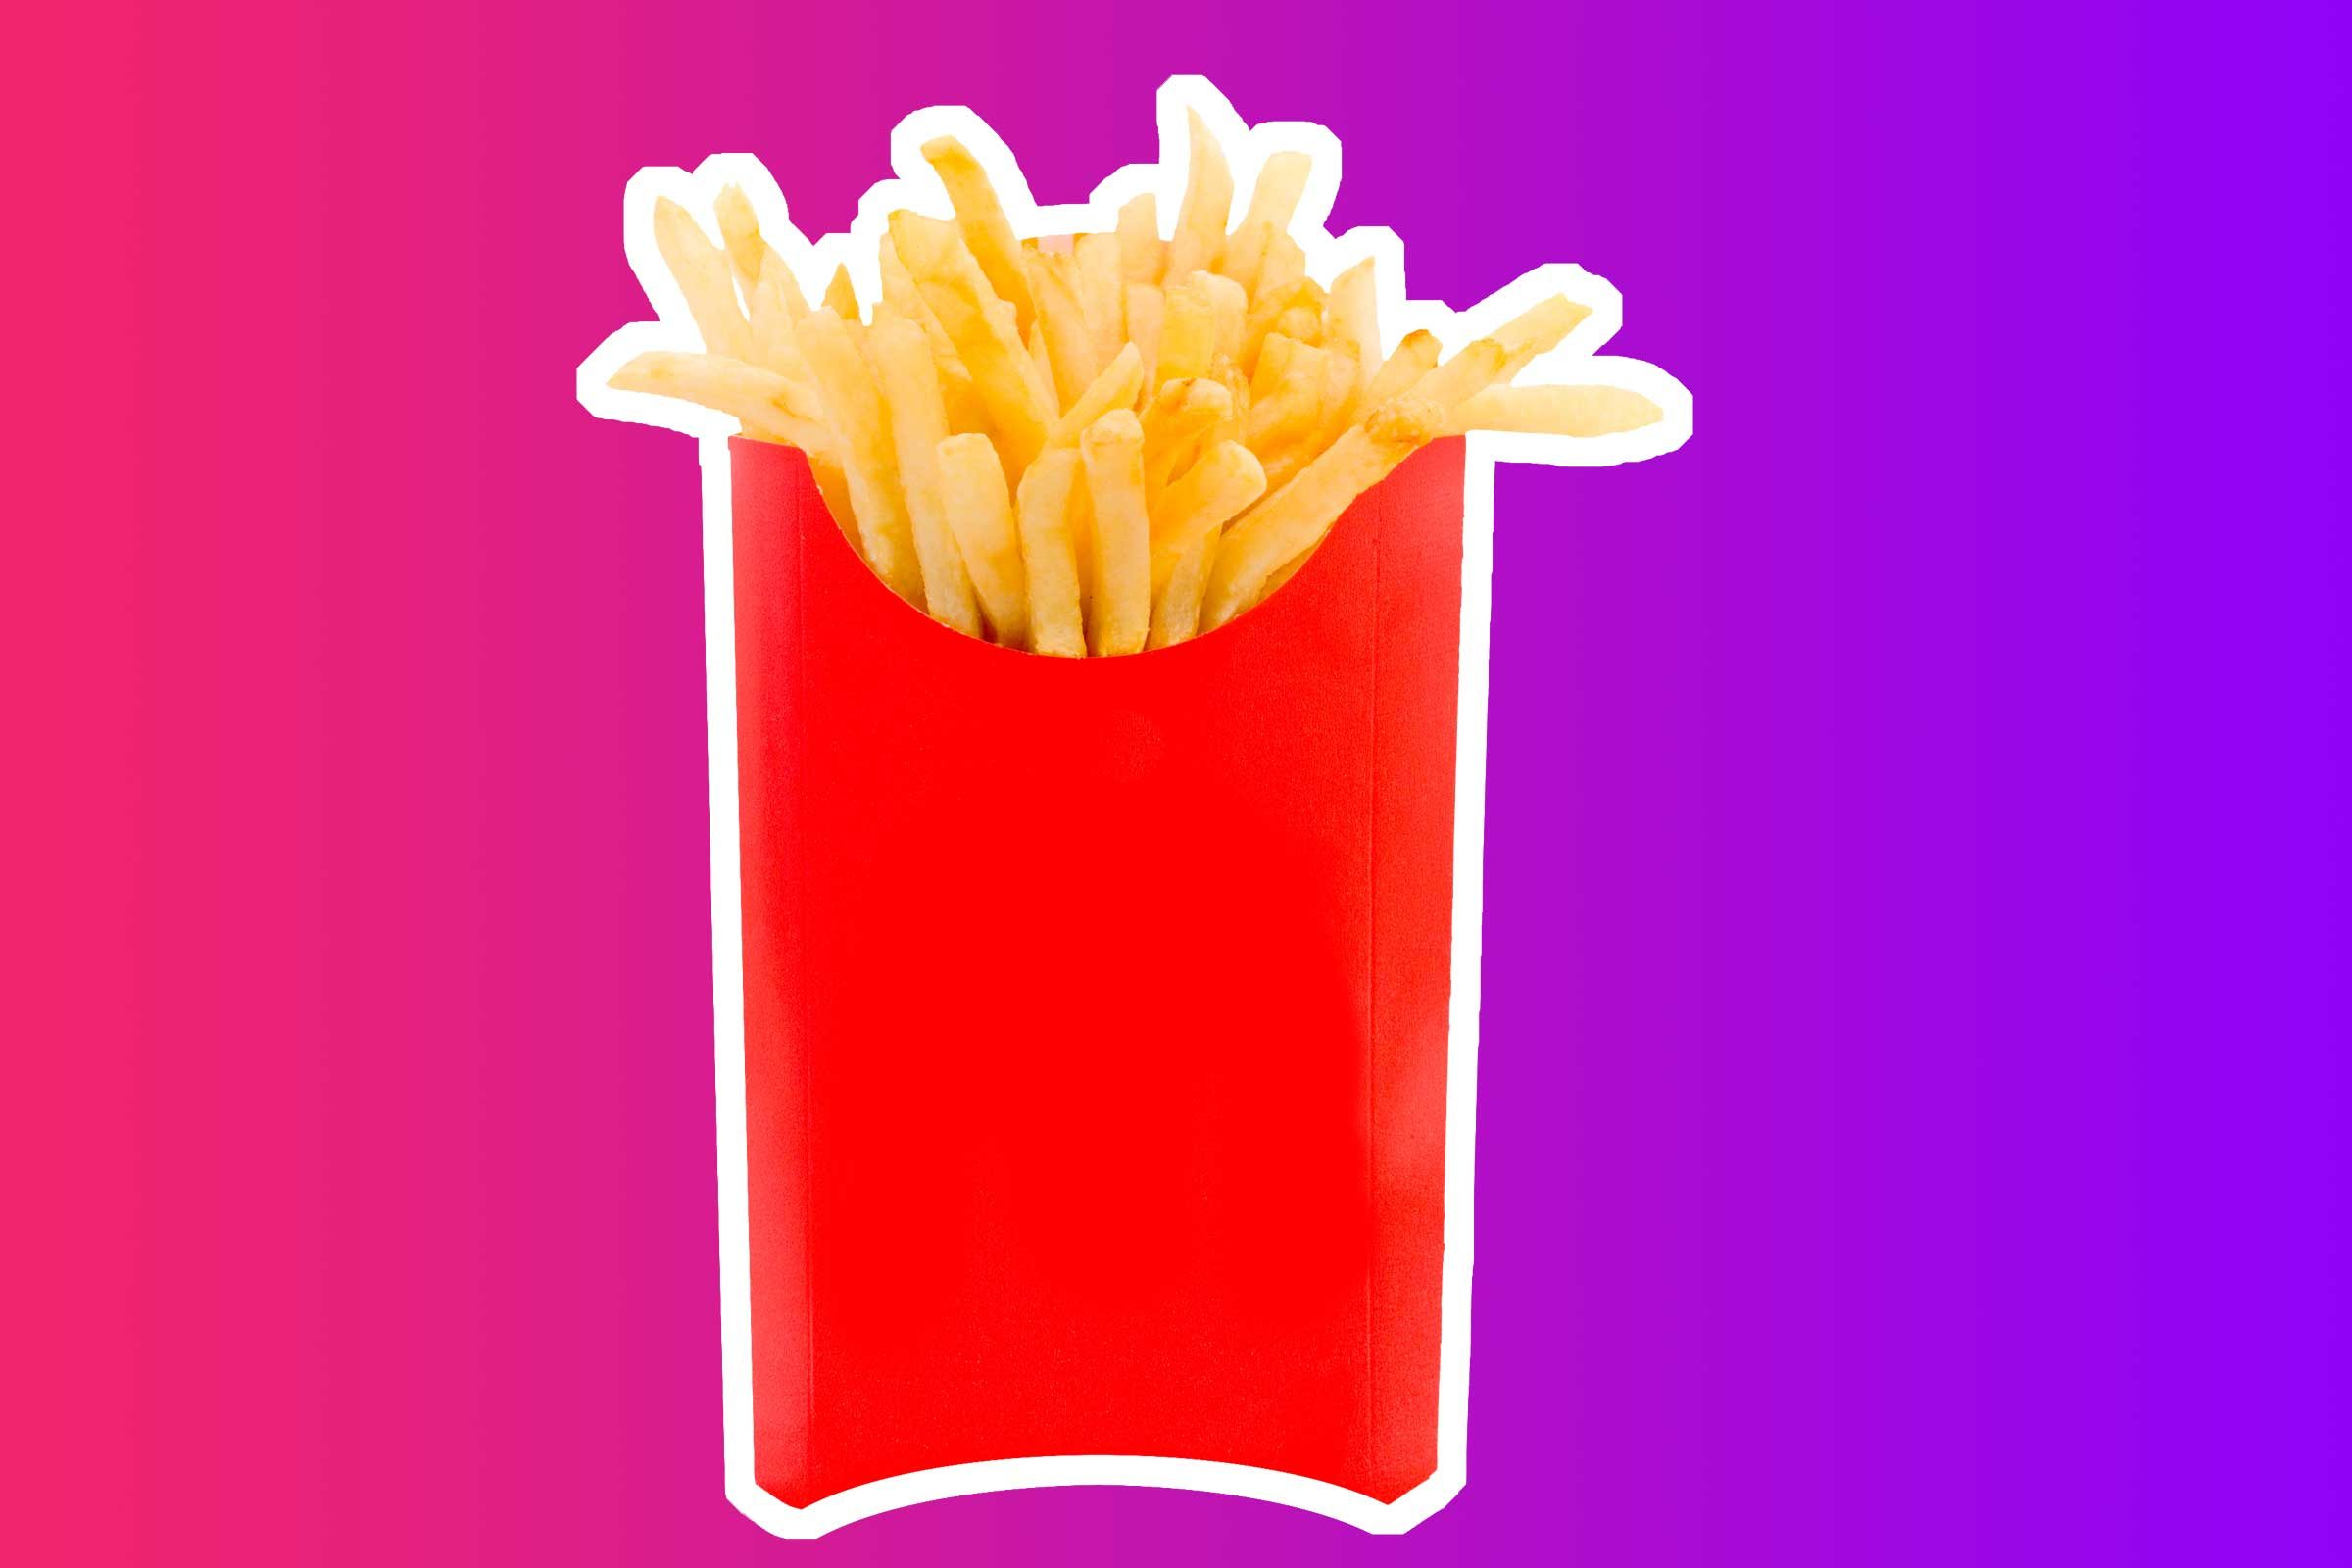 Can Fried Foods Cause Constipation